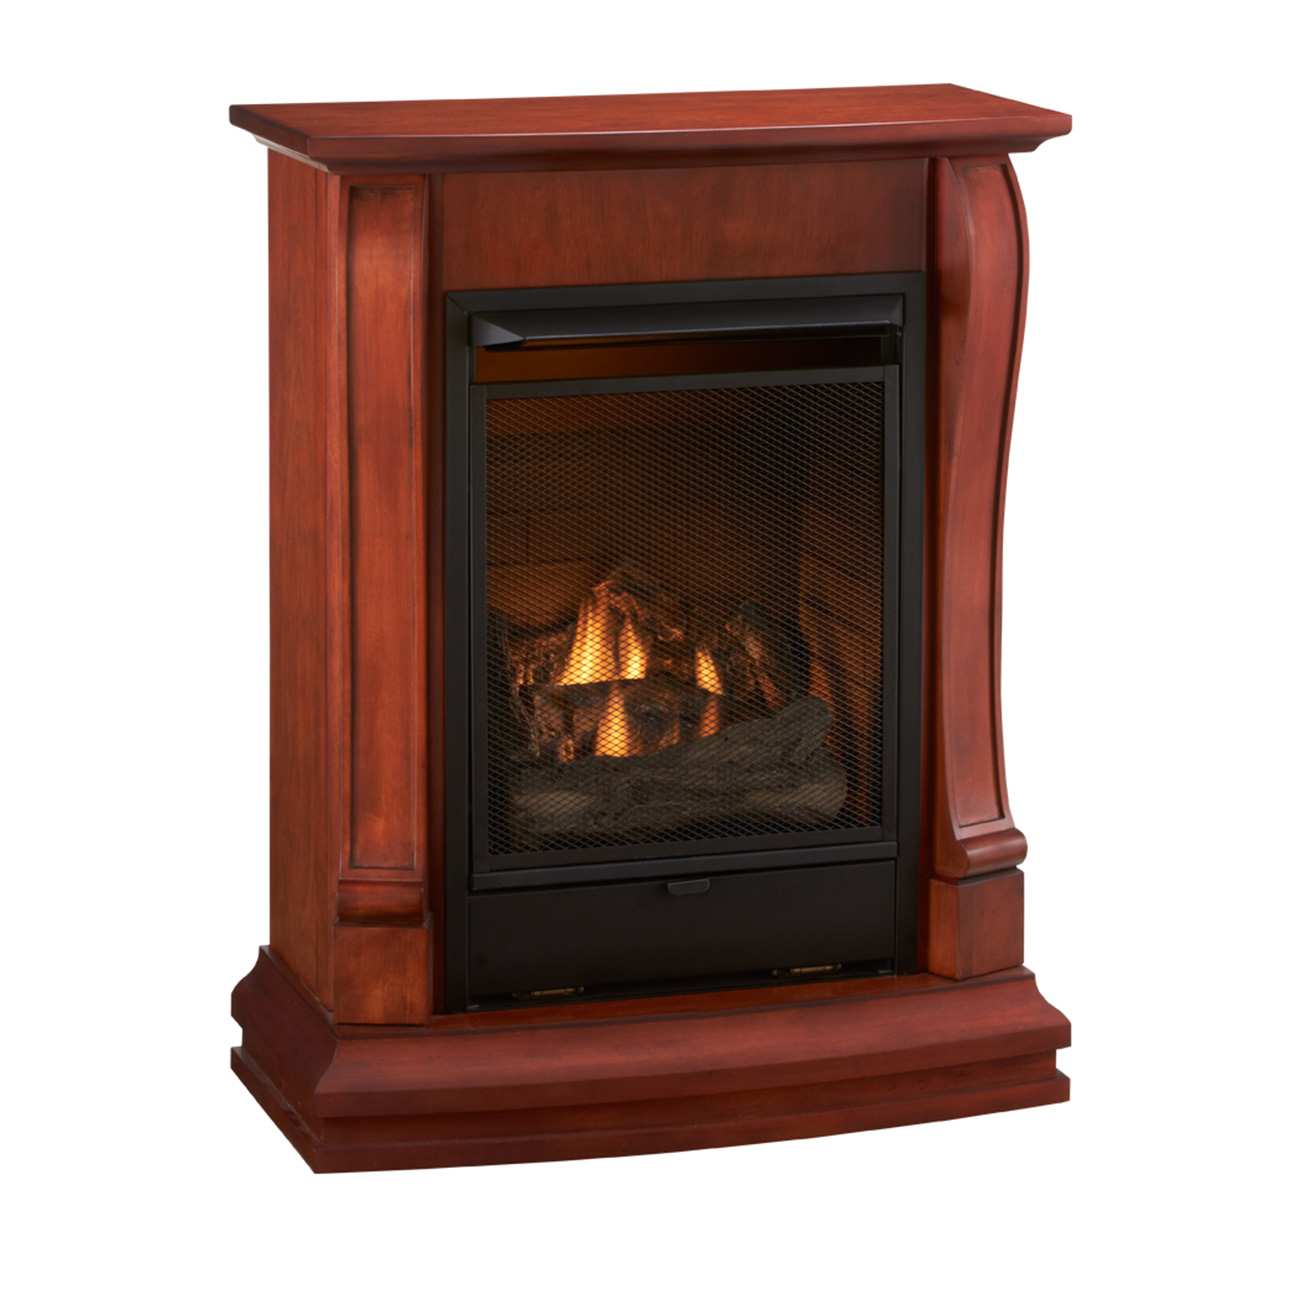 ProCom-Heating-Cedar-Ridge-CRHFV200DT